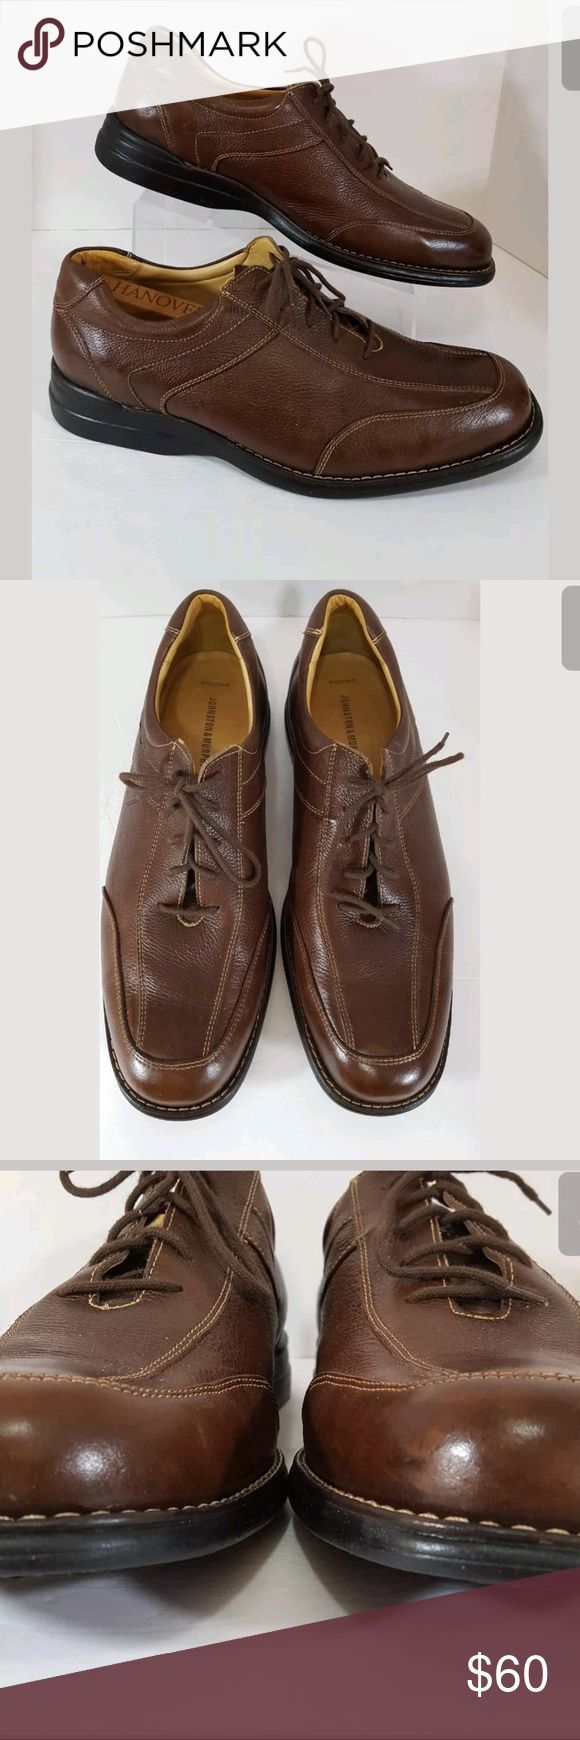 """Johnston & Murphy Sz 14 M Men Brown Oxford 20-7219 Johnston & Murphy Size 14 M Mens Brown Oxford Sheepskin Shoe G3 Brazil 20-7219 Johnston Murphy Brazil  G3 20-7219  Mens Brown Oxford Sheepskin   13.75 """" from toe to heel on bottom sole  4.75 """" widest point on bottom sole Size: 14 M please check the measurements given  before purchasing to insure that this item will fit Good used condition - Looks to have been lightly worn Johnston & Murphy Shoes Oxfords & Derbys"""